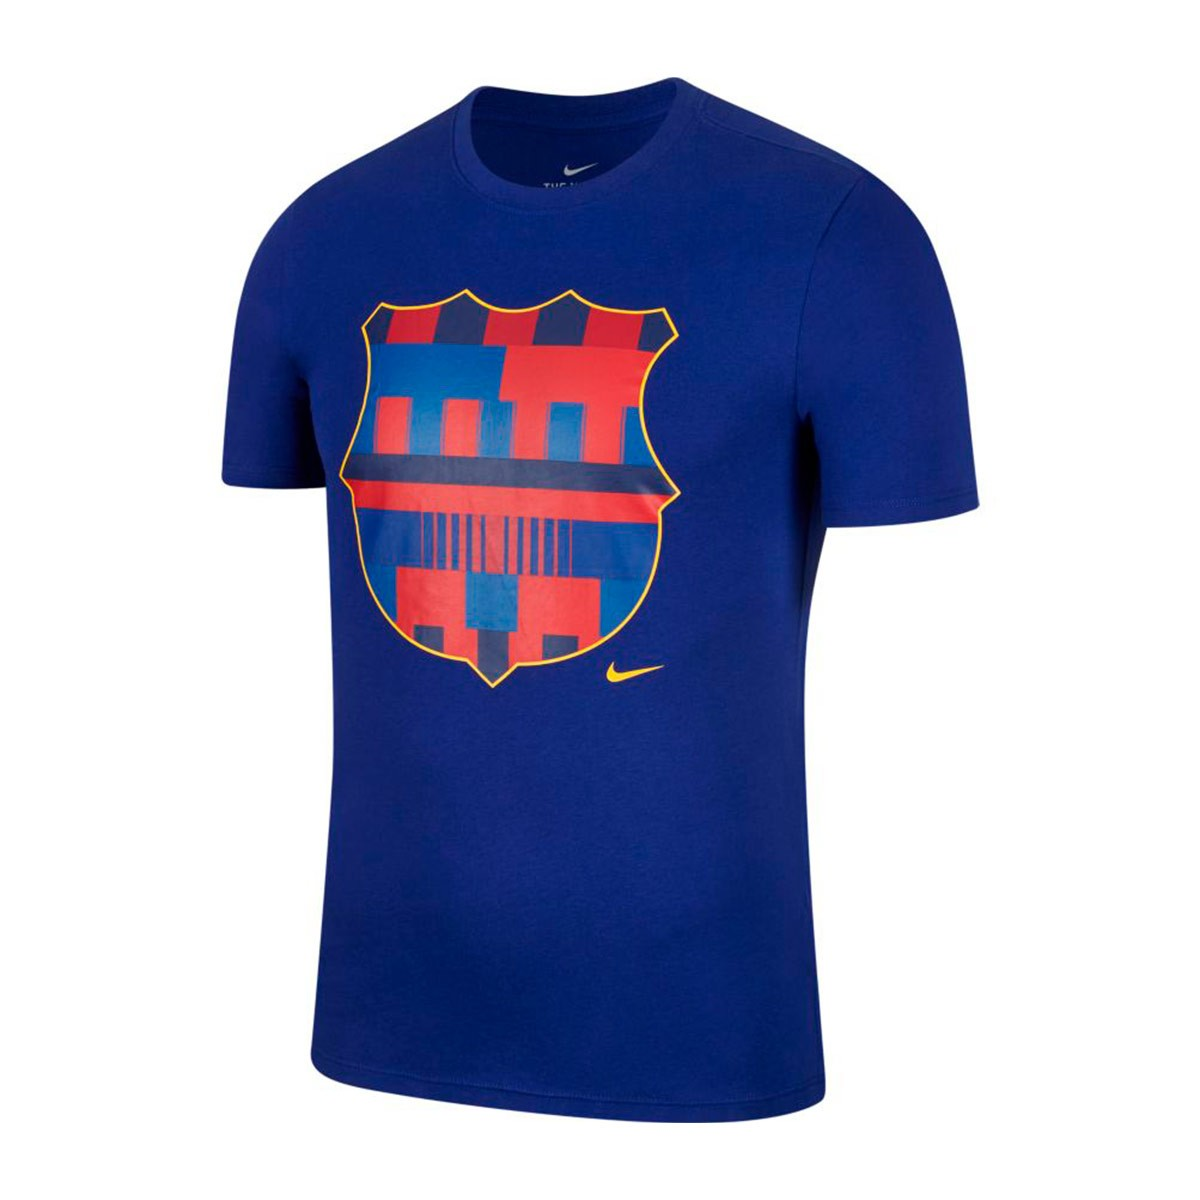 Jersey Nike Kids Fc Barcelona 20 Years Deep Royal Blue Football Store Futbol Emotion